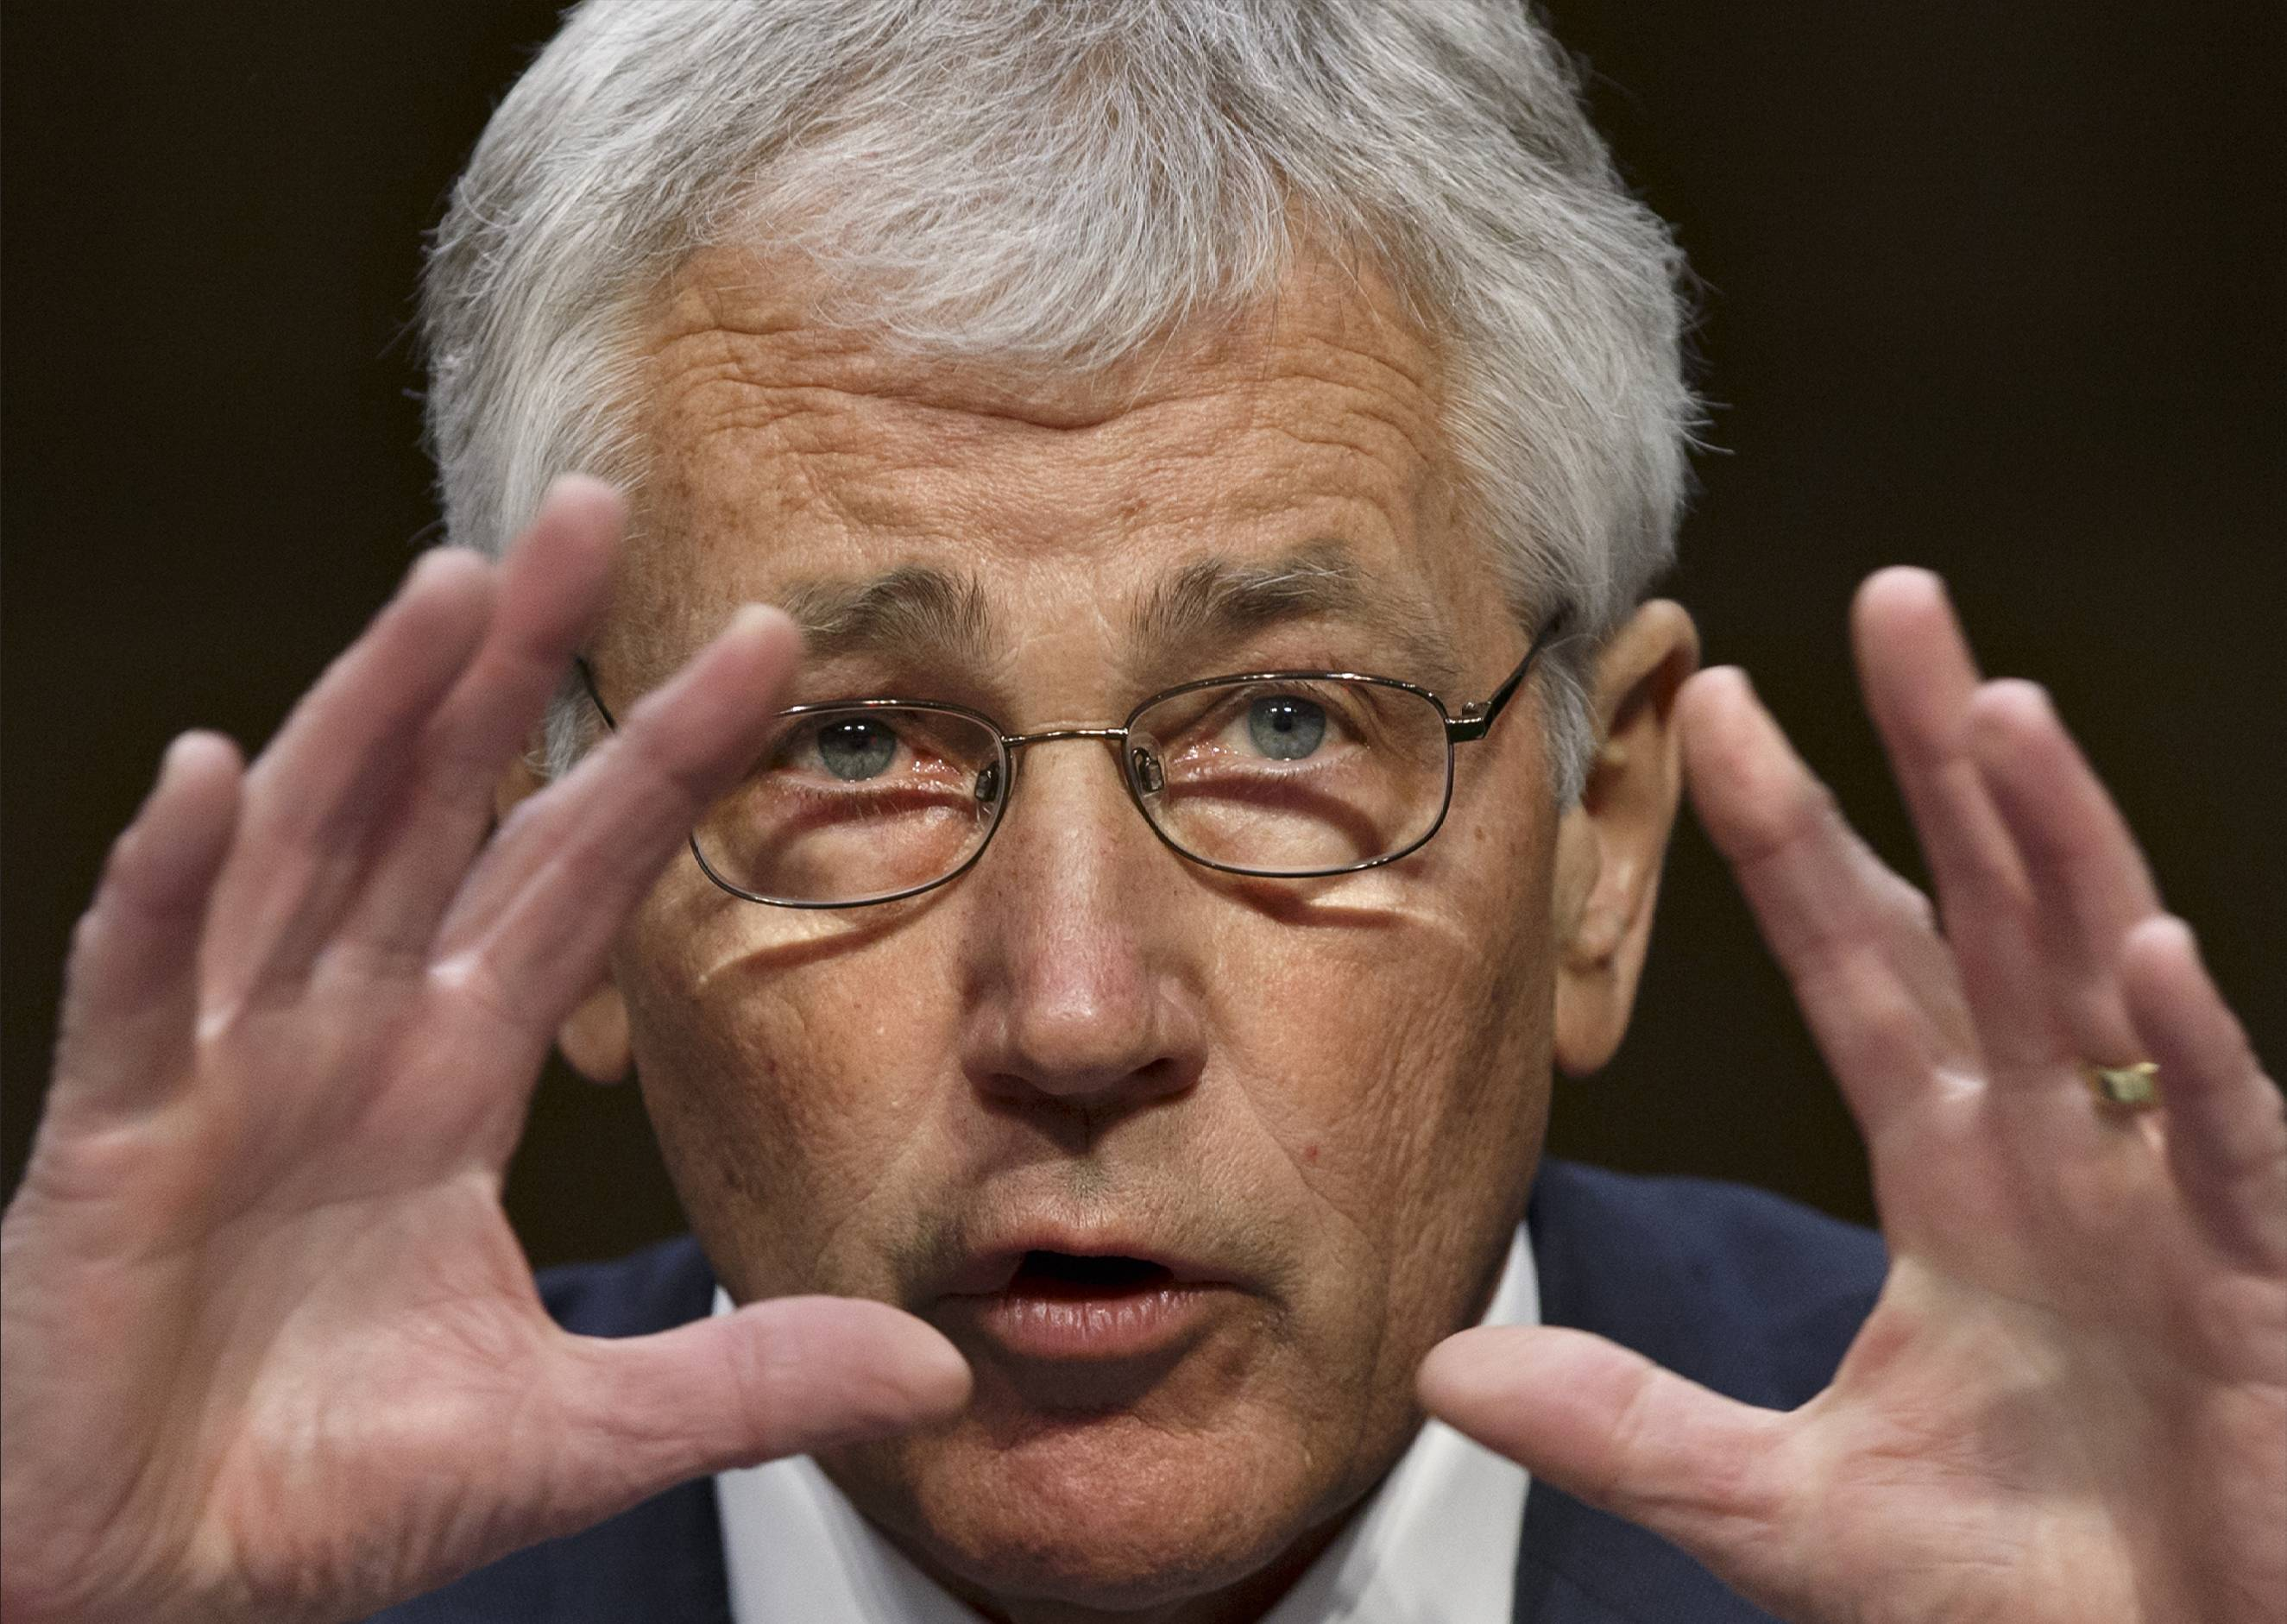 In response to Russia's takeover of Ukraine's Crimean Peninsula, Defense Secretary Chuck Hagel said the U.S. was stepping up joint aviation training with Polish forces. The Pentagon also is increasing American participation in NATO's air policing mission in its Baltic countries, he said.